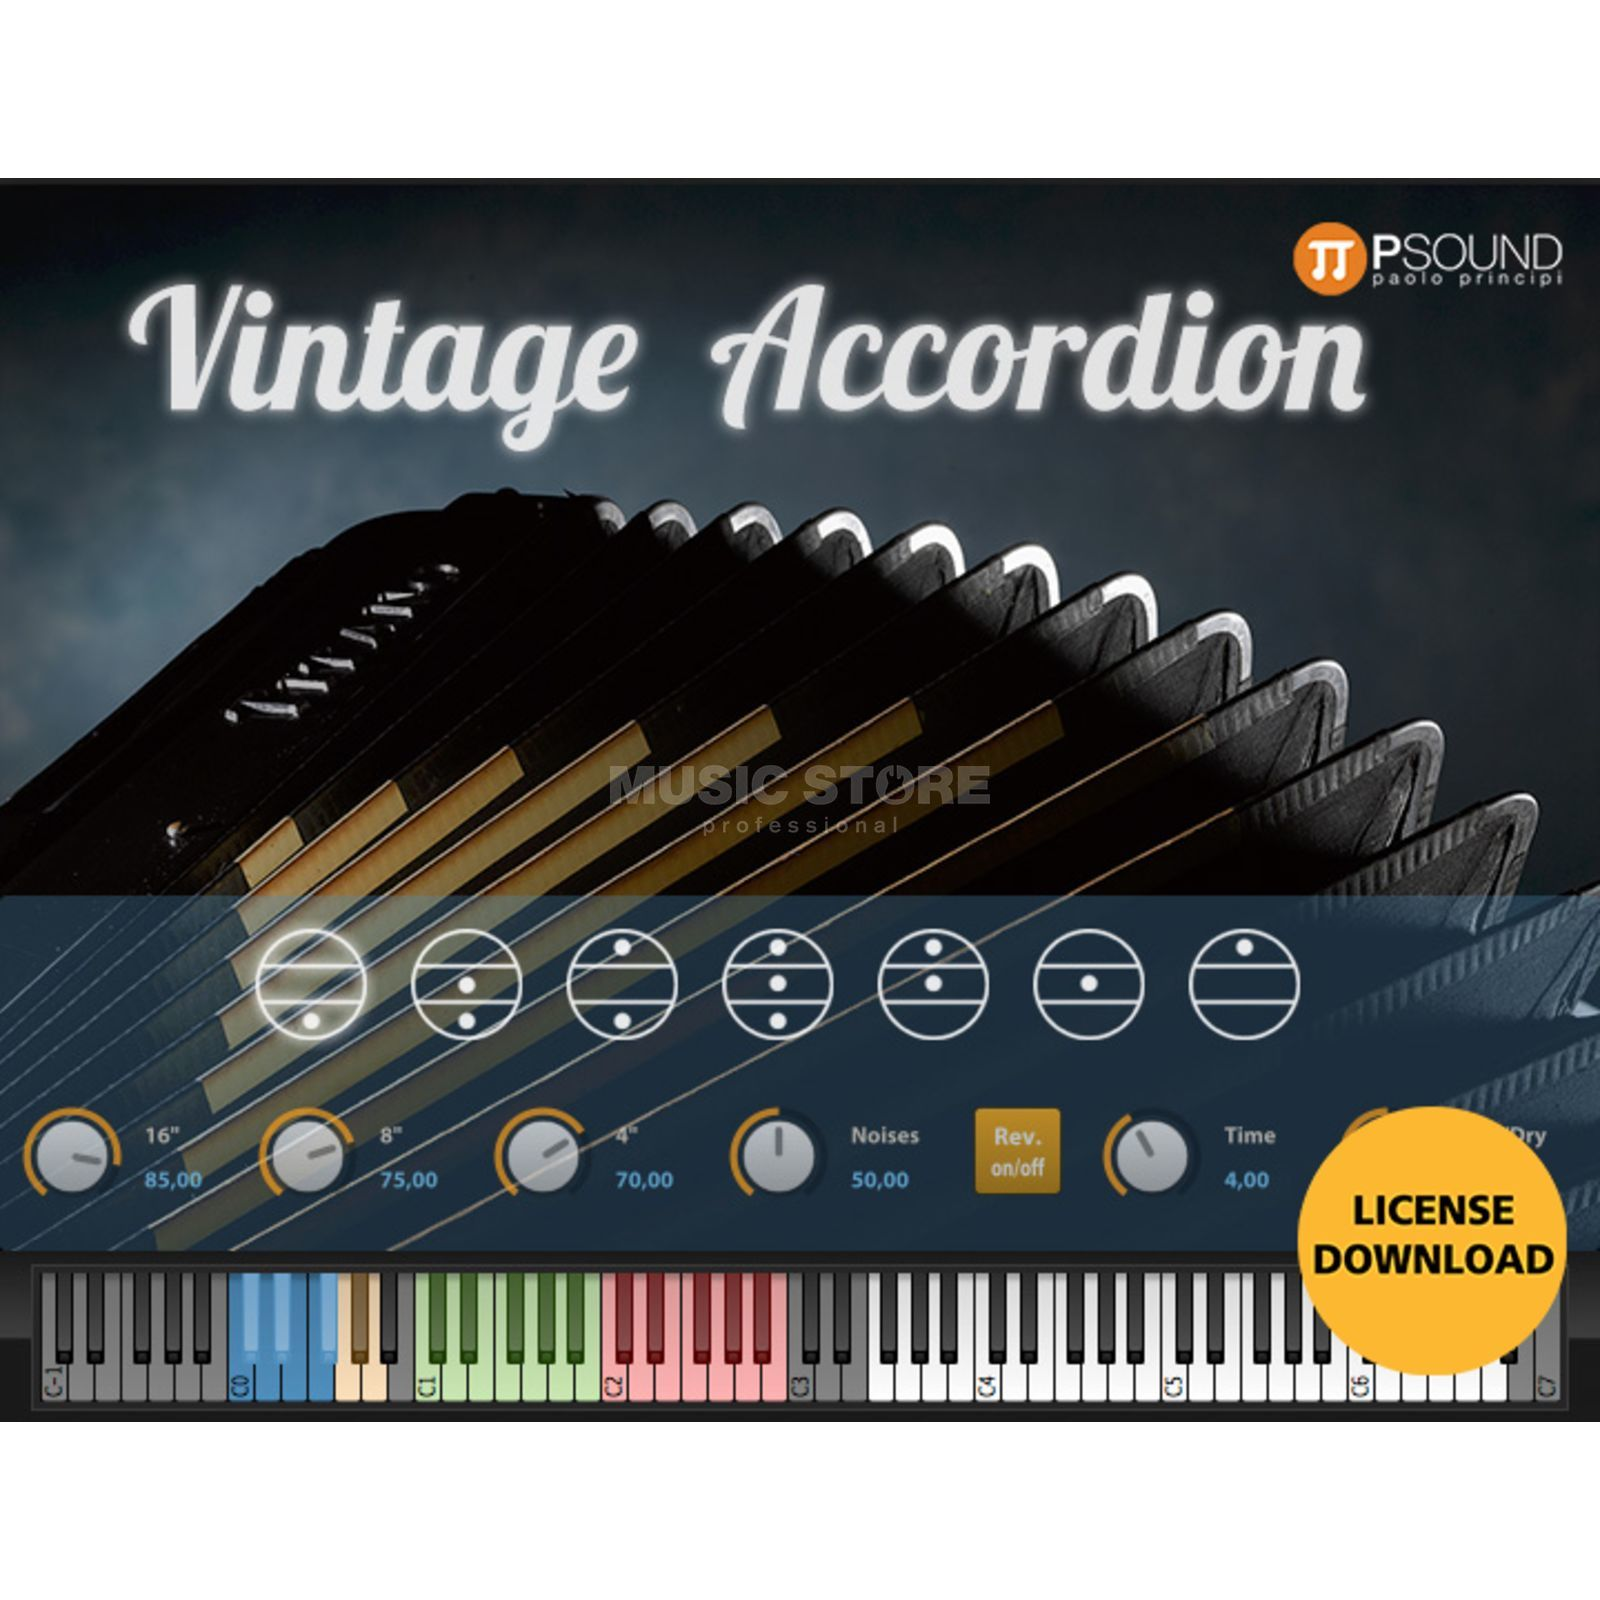 PSOUND PAOLO PRINCIPI PSOUND Vintage Accordeon (CODE) incl UVI Worksation Produktbillede